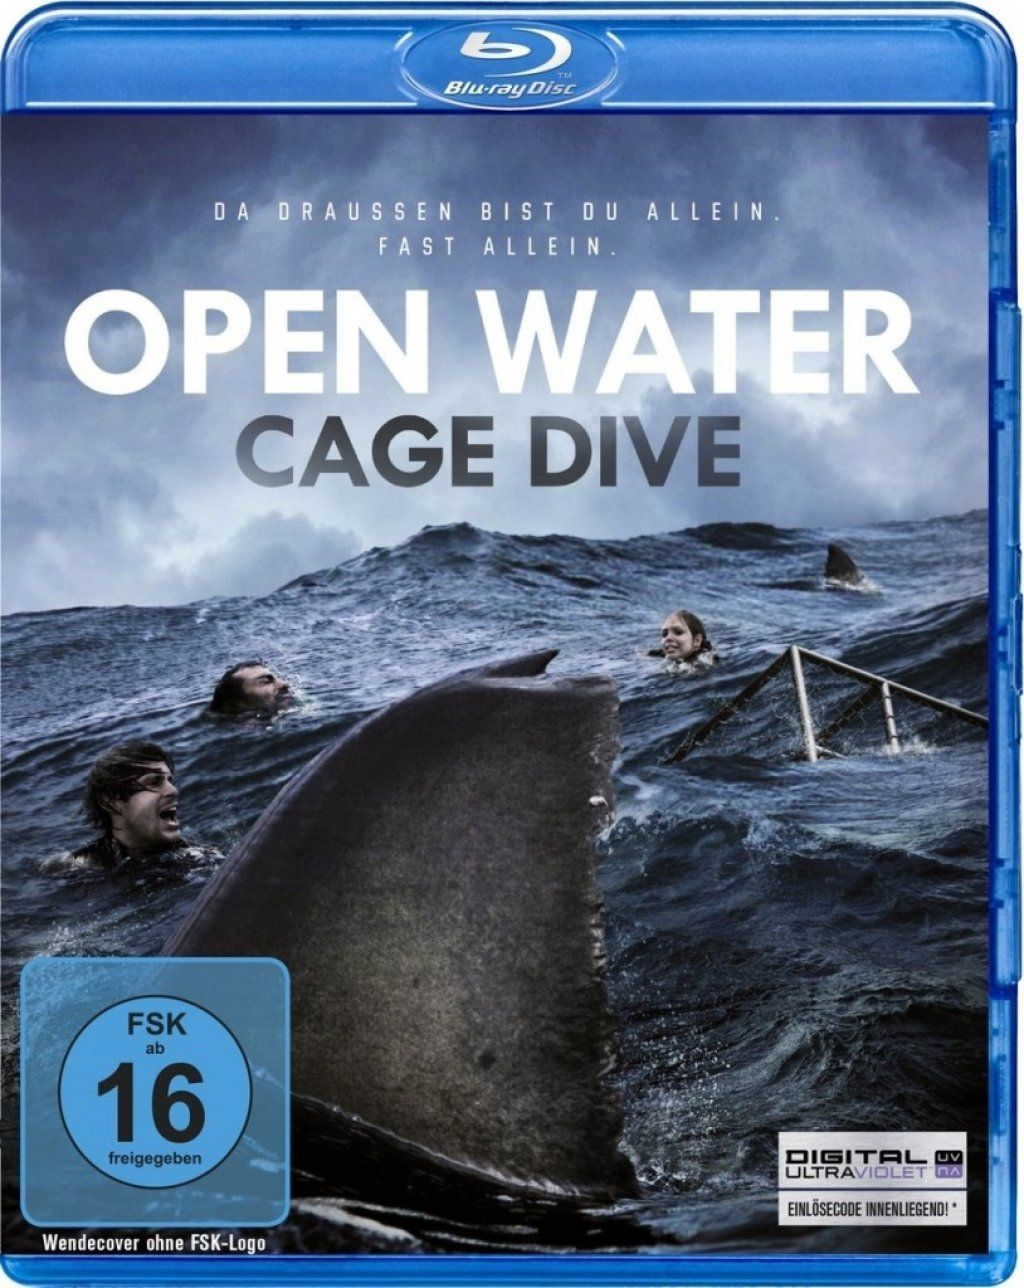 Open Water 3 - Cage Dive (BLURAY)